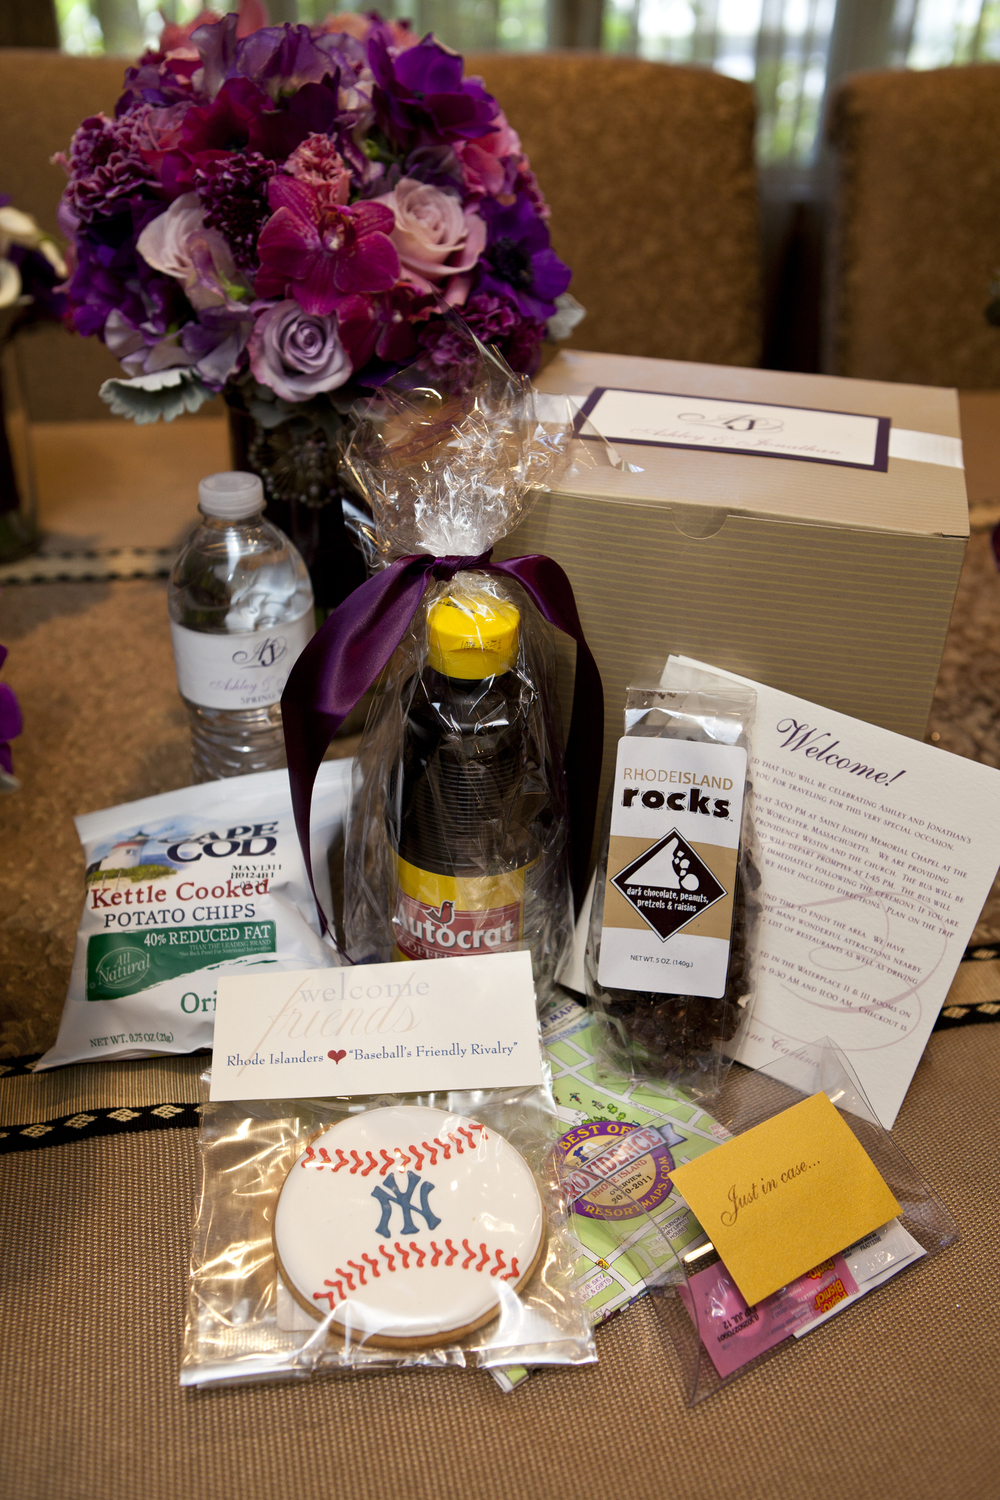 This bride had Welcome Boxes for her Providence, Rhode Island wedding. It included many Rhode Island goodies including Autocrat Coffee Syrup!